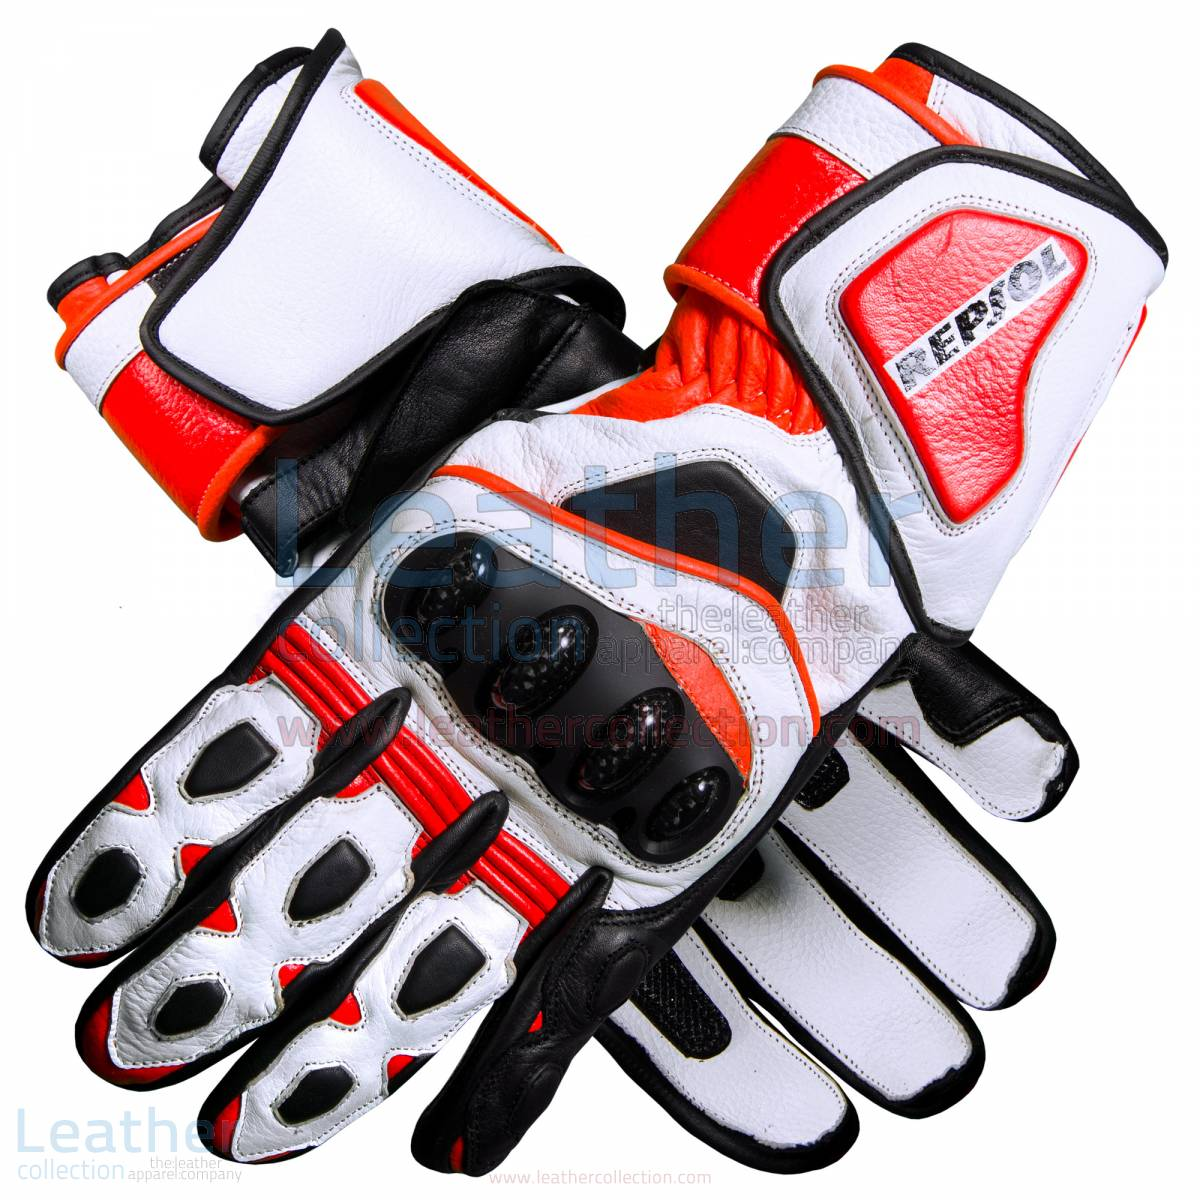 Repsol Pro Motorbike Leather Gloves